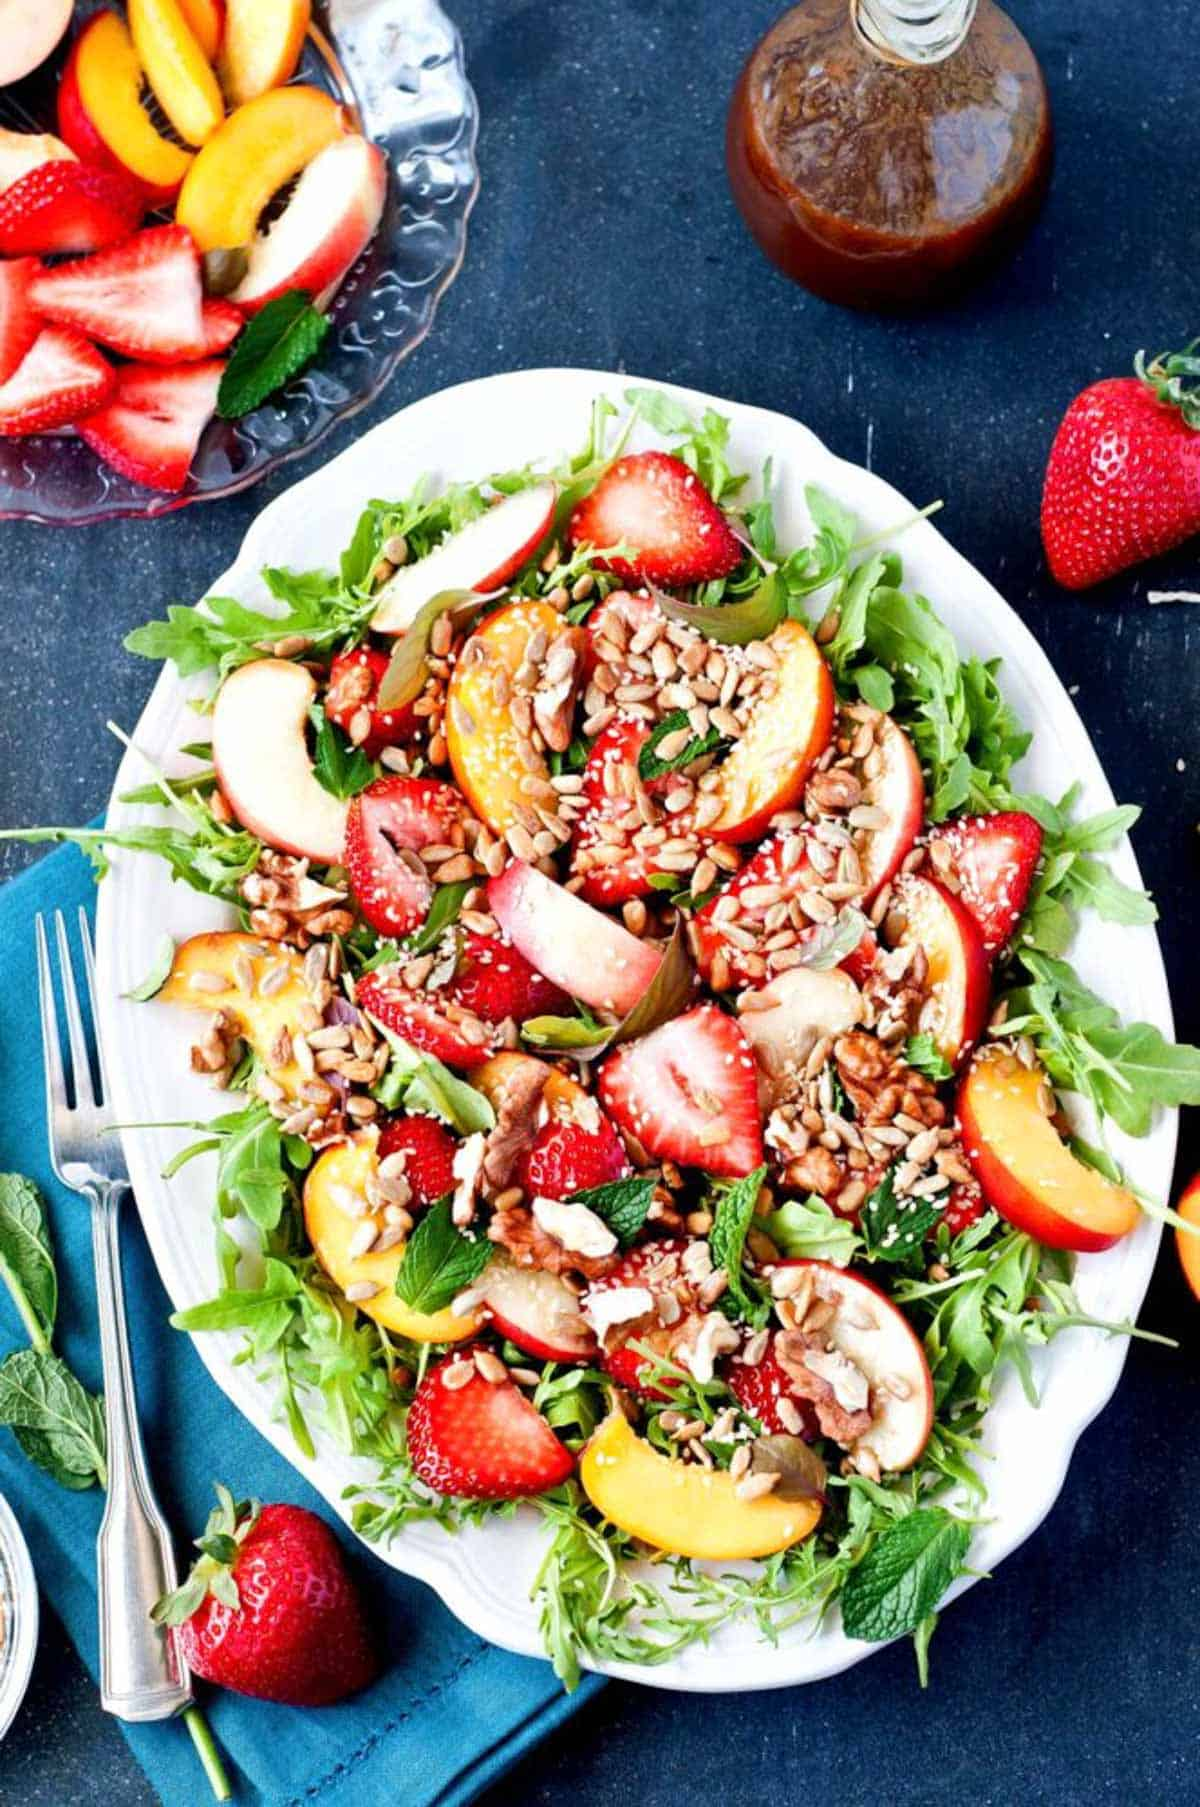 This mixed green salad is the perfect display of spring fruits